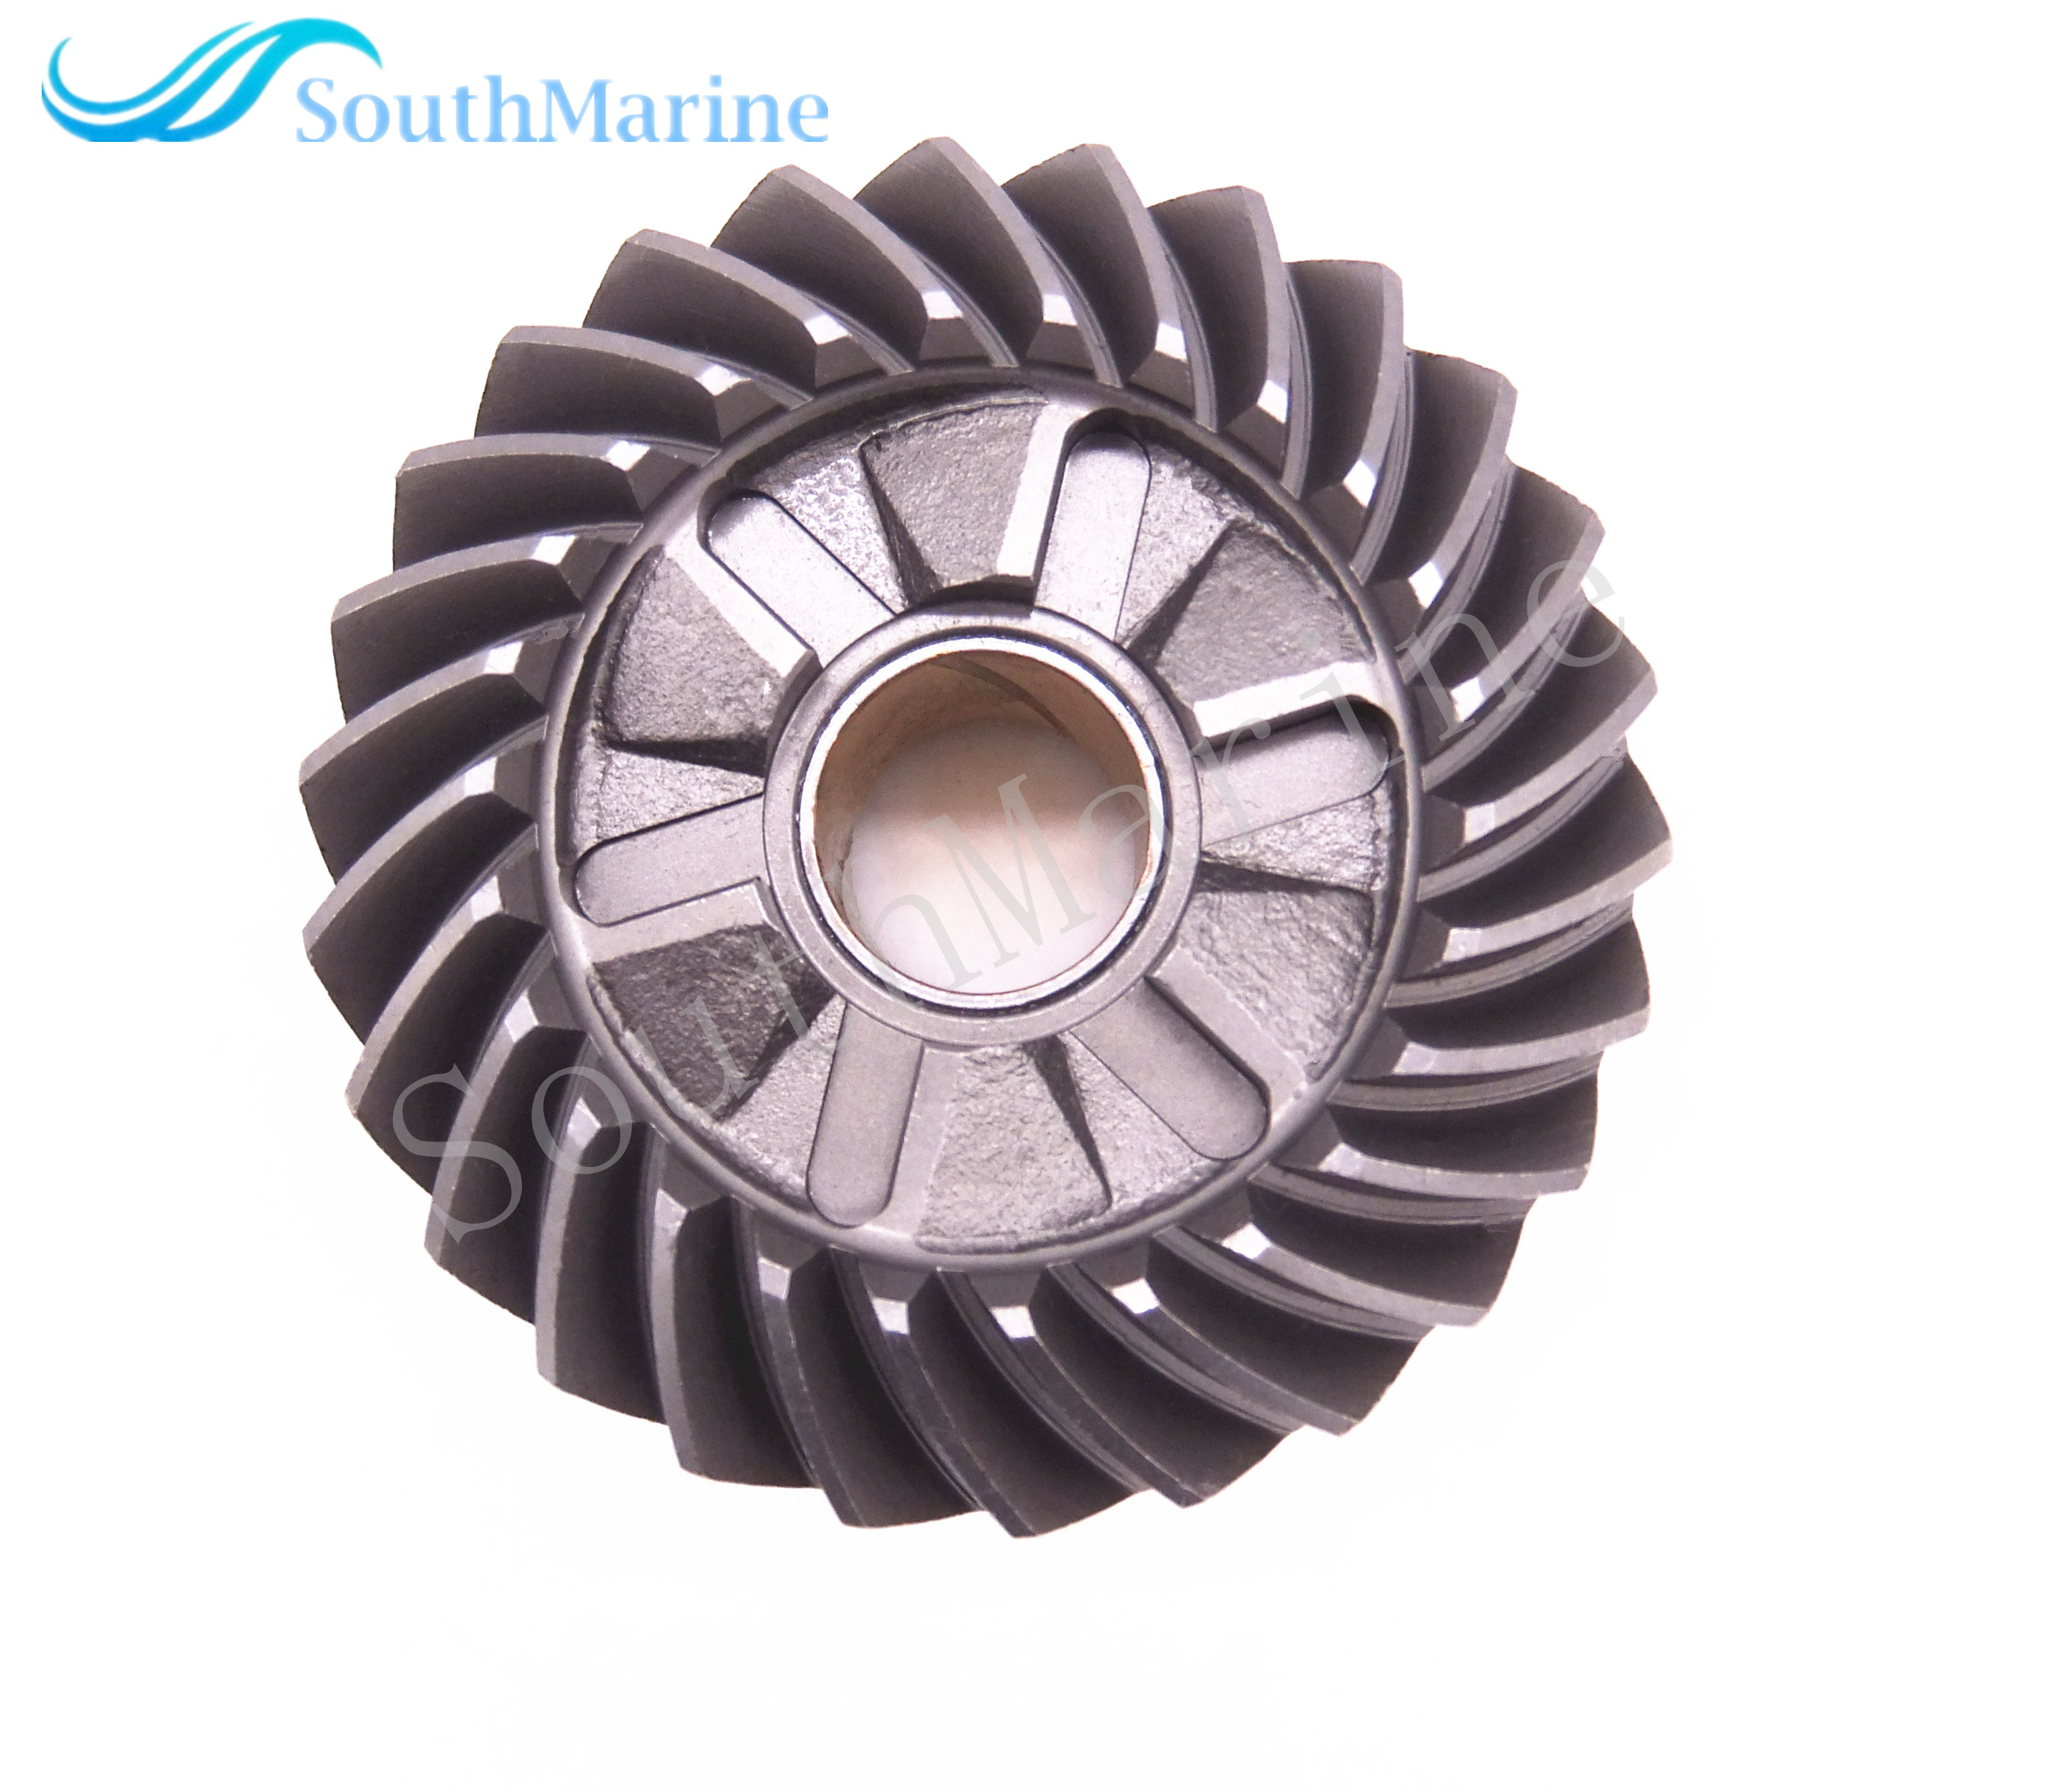 Boat Parts & Accessories Obedient T85-04000100 Forward Gear For Parsun Hdx Outboard Engine 2-stroke T75 T85 T90 Boat Motor